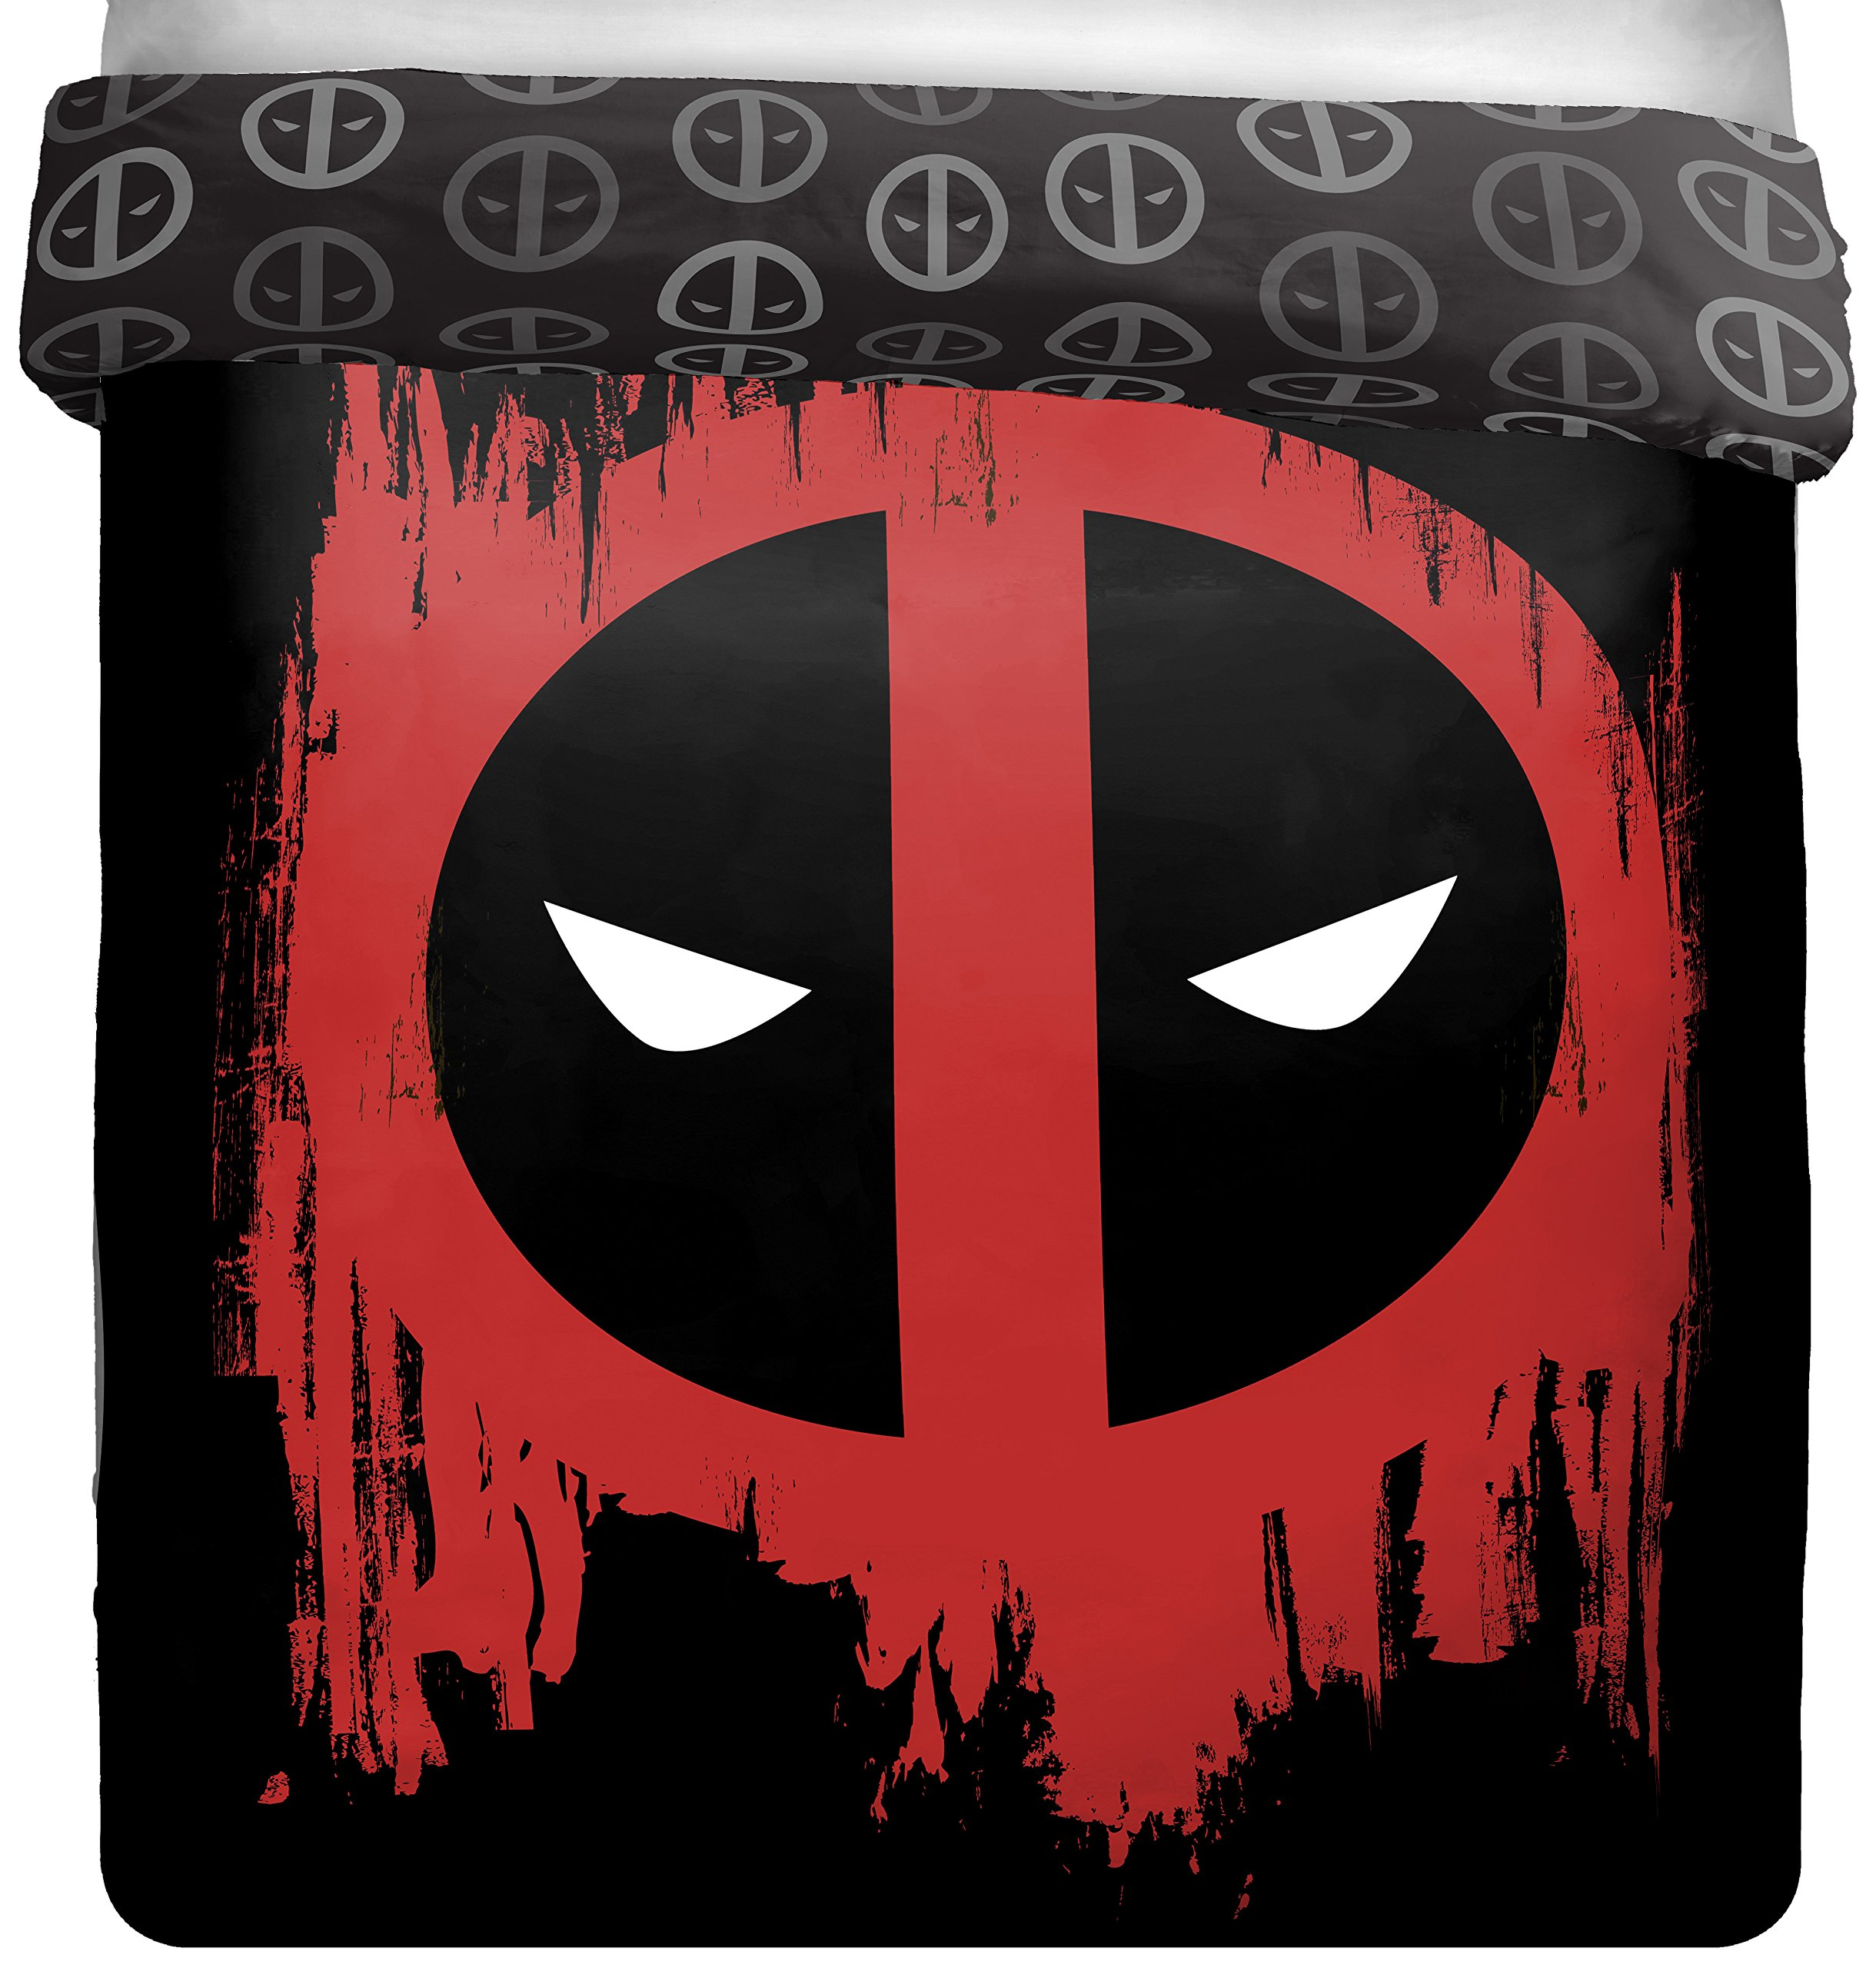 Marvel Deadpool Invasion Full/Queen  Comforter - Super Soft Kids Reversible Bedding features Deadpool - Fade Resistant Polyester Microfiber Fill (Official Product)